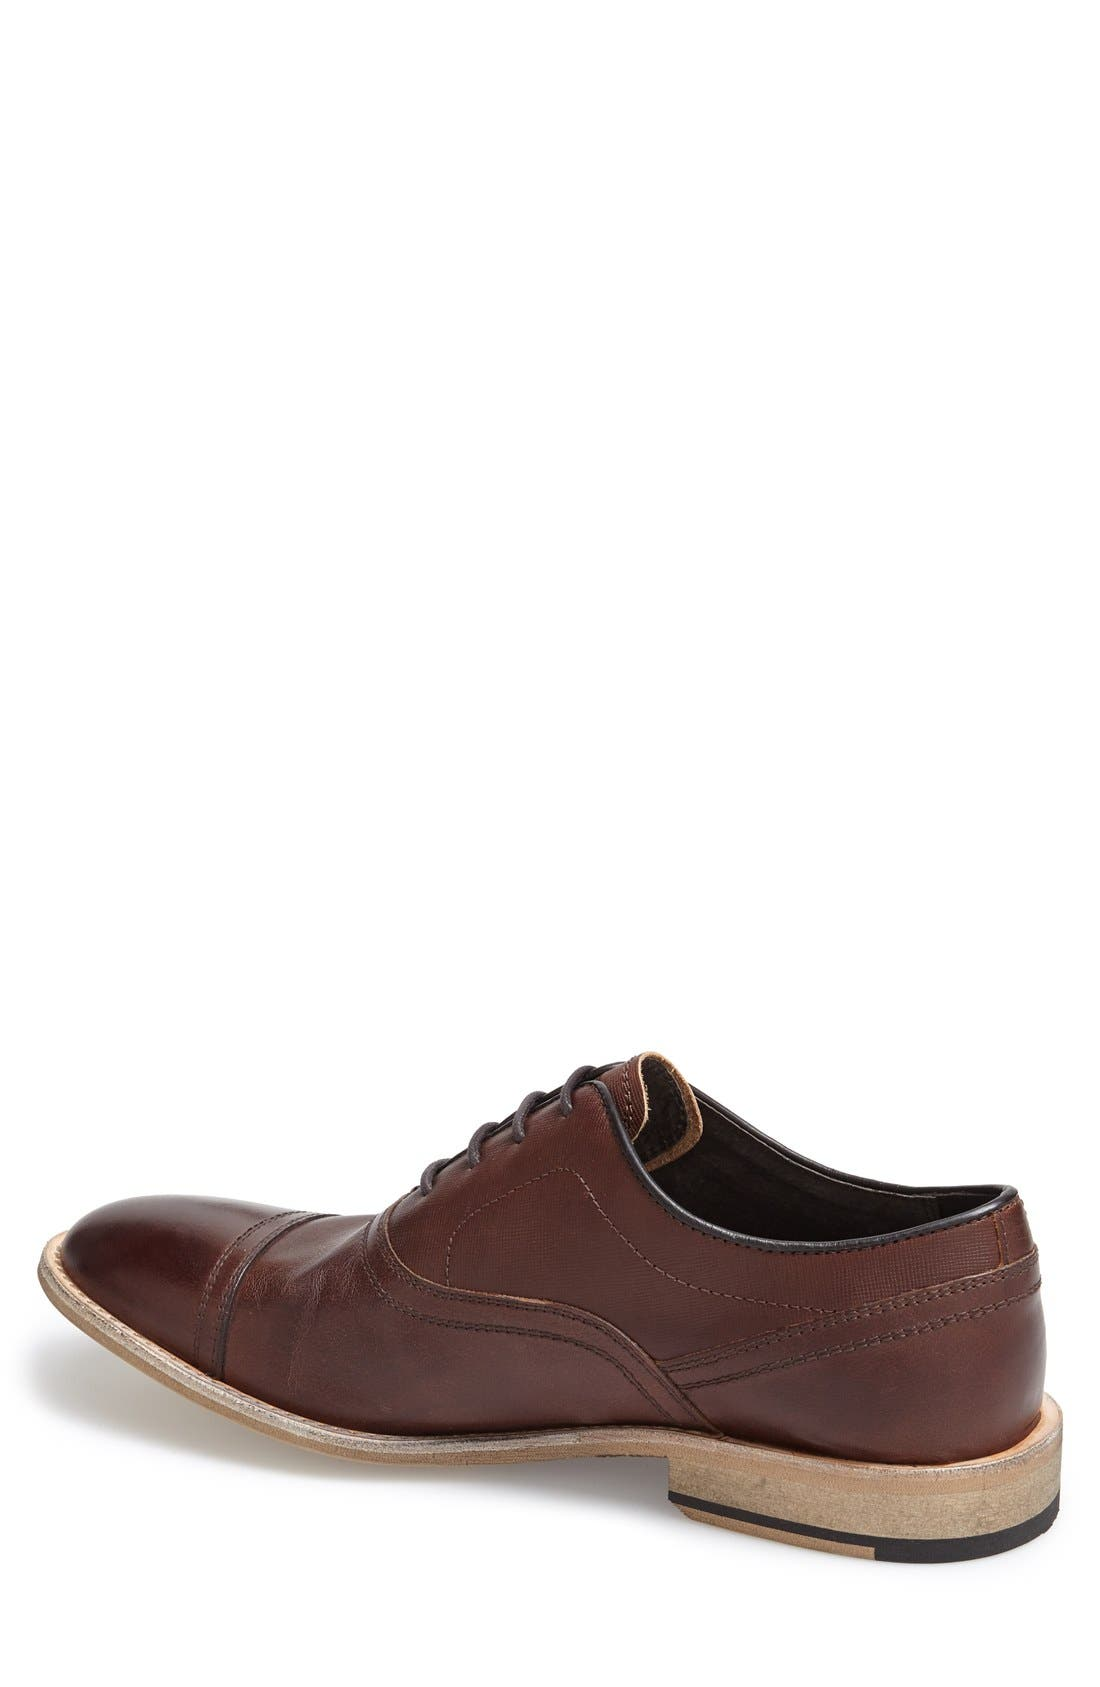 Alternate Image 2  - Andrew Marc 'Henry' Cap Toe Oxford (Men)